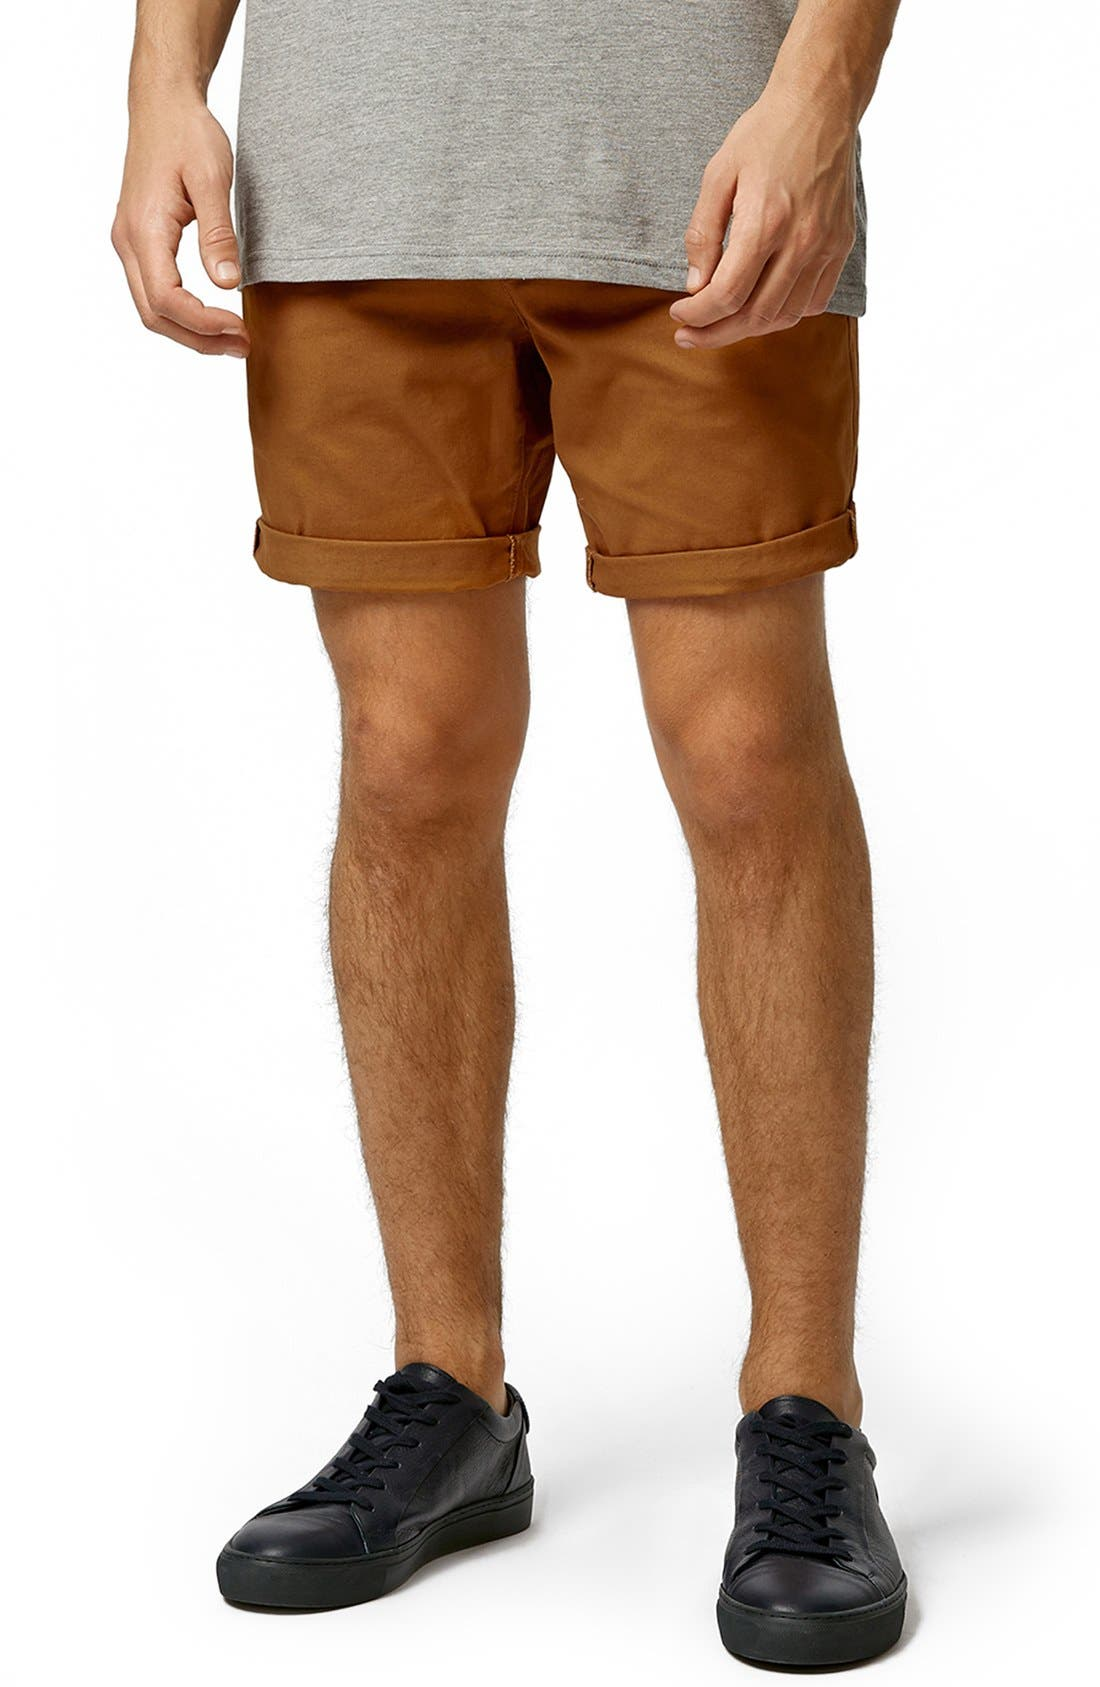 Chino Shorts,                             Main thumbnail 1, color,                             Mustard